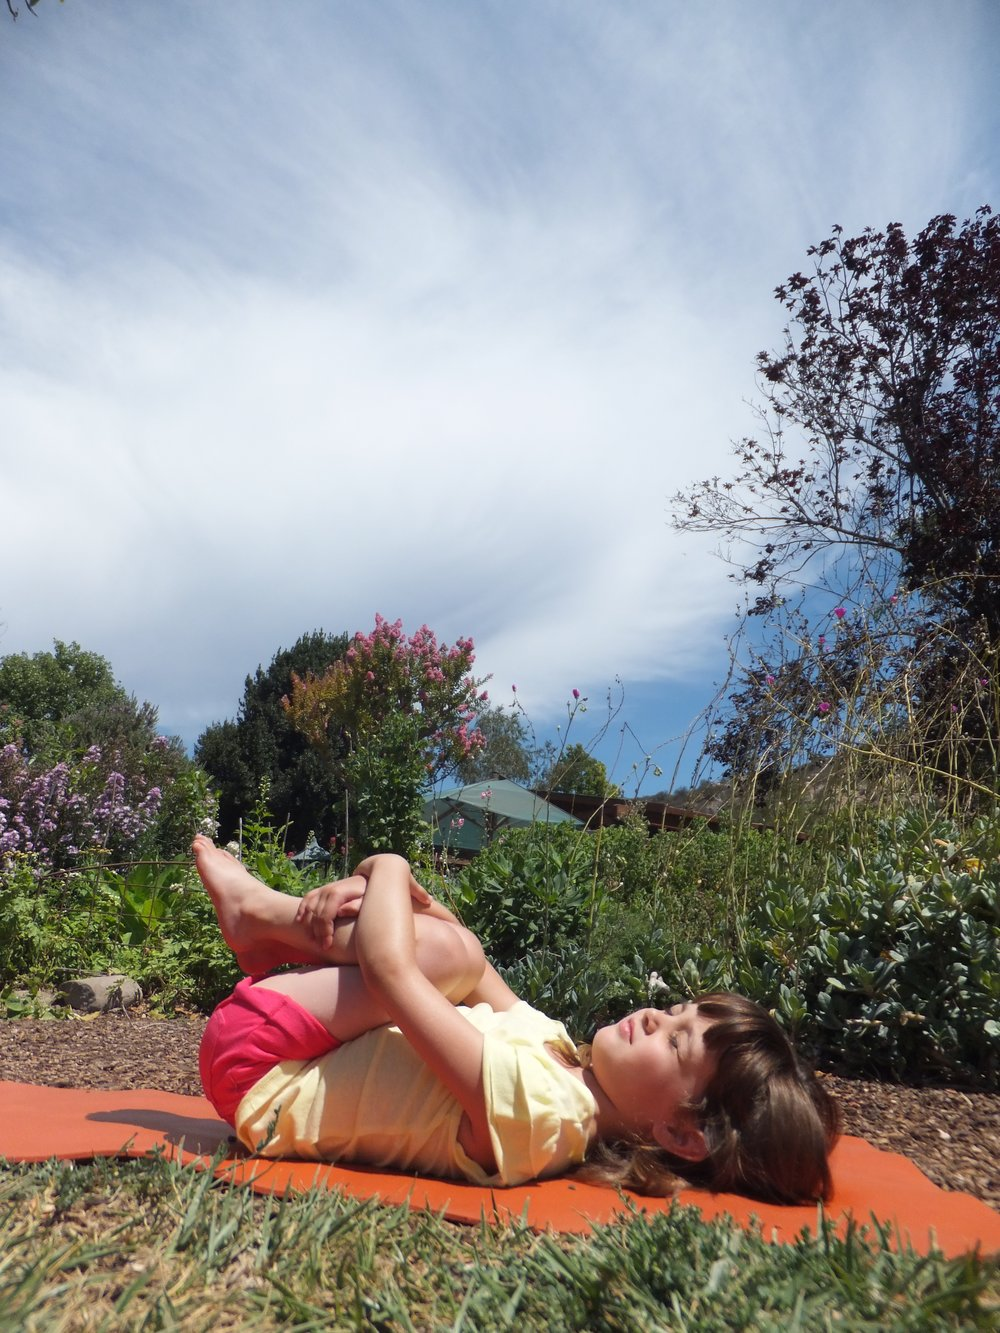 kids_yoga_knees-300x200.jpg